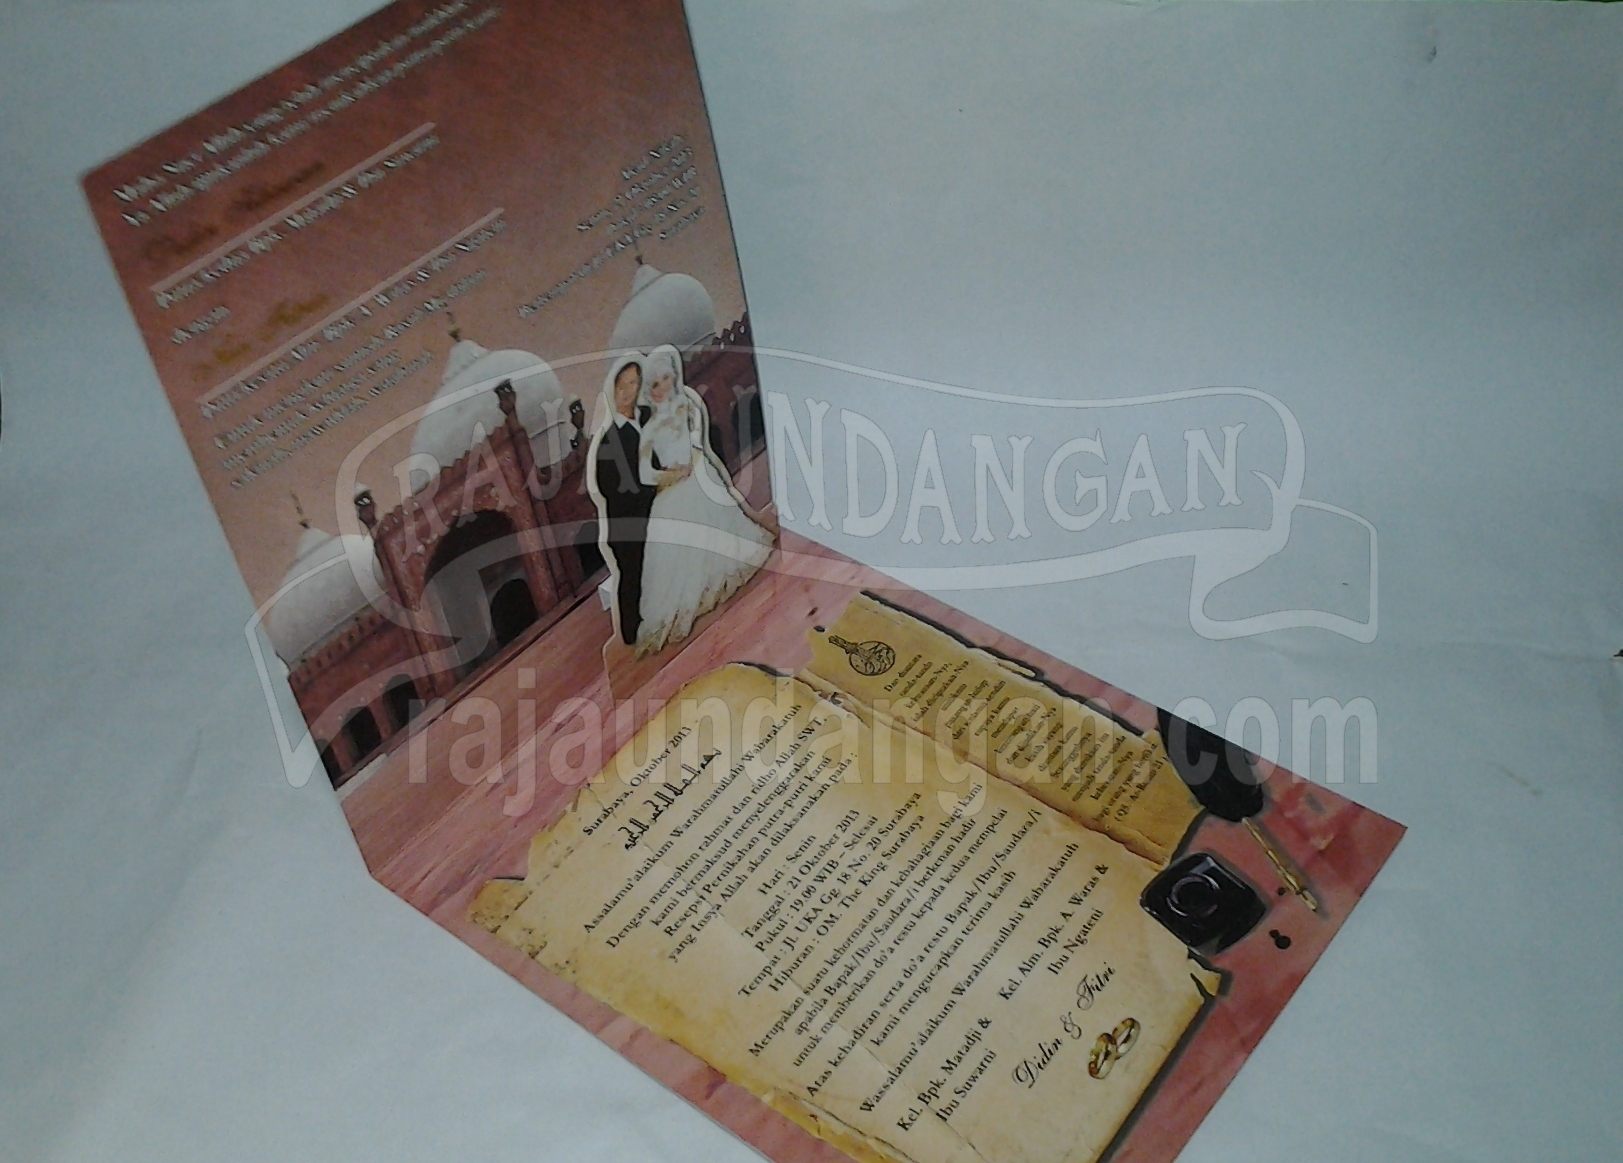 Undangan Pernikahan Softcover Mini Pop Up Didin dan Fitri 3 - Cetak Wedding Invitations Unik di Babakan Jerawat